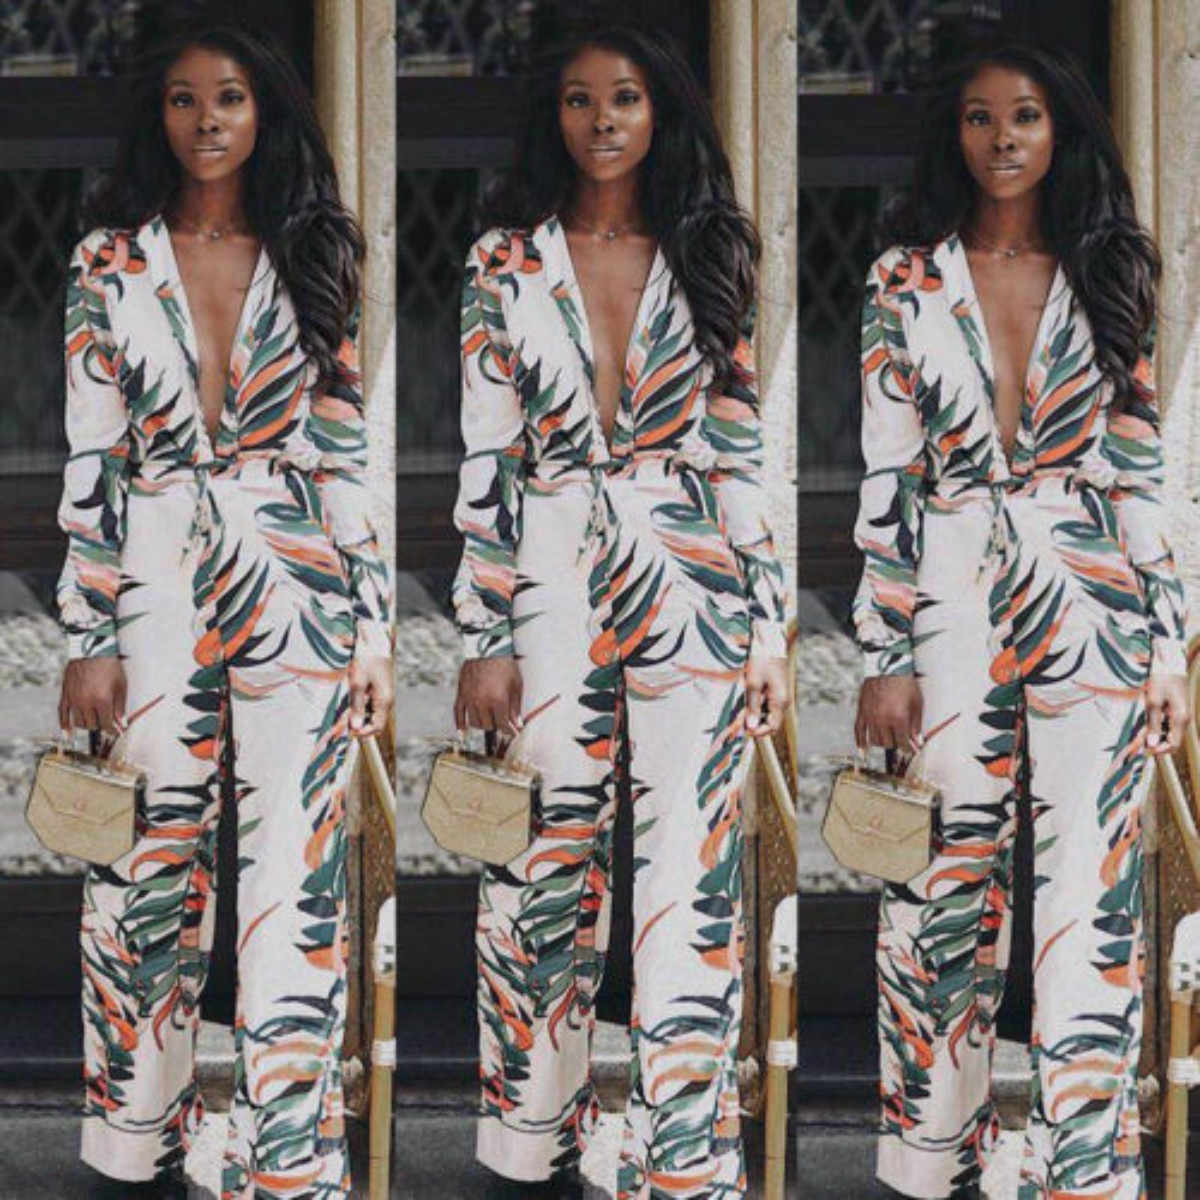 8296423f0641 Rompers 2018 New Brand Sexy Ladies Women Clubwear Jumpsuit Long Sleeve V  Neck Playsuit Trousers Outfit